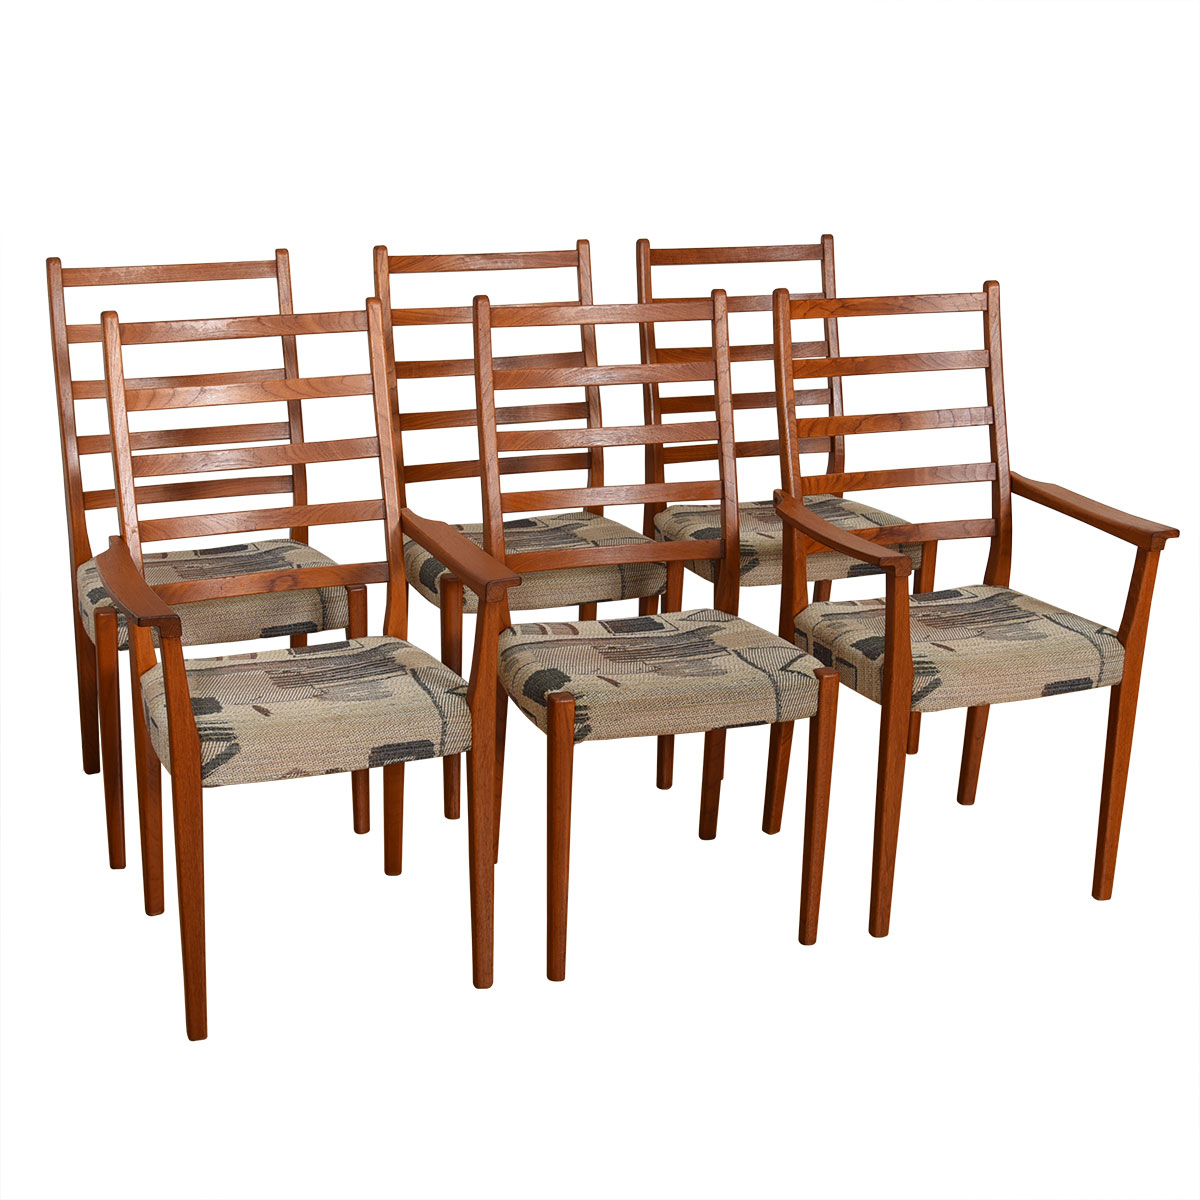 Set of 6 (2 Arm + 4 Side) Danish Dining Chairs